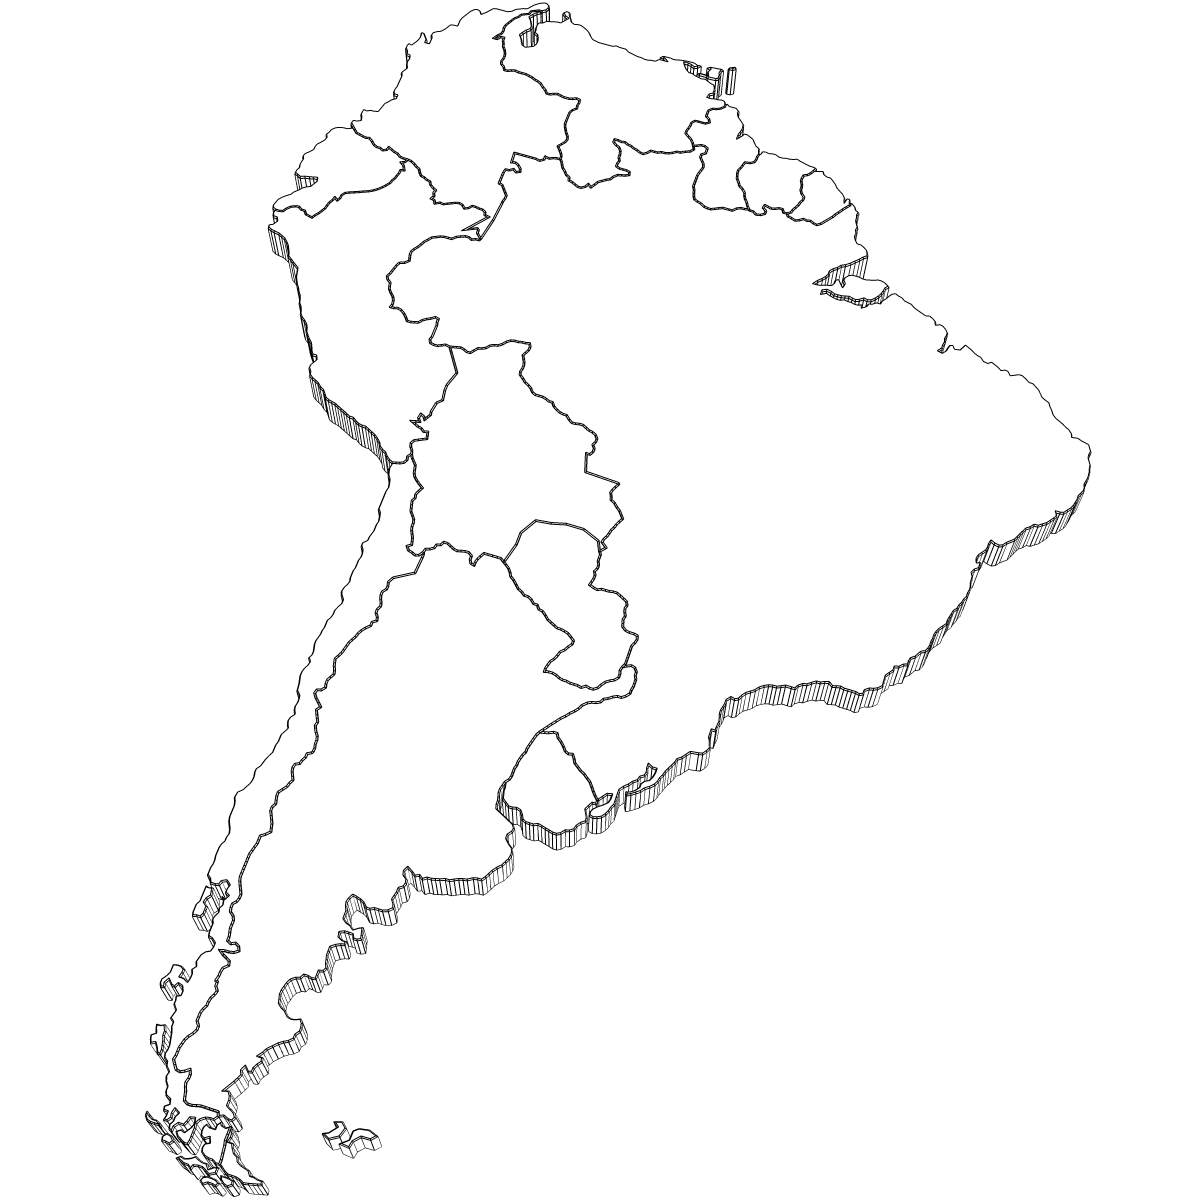 south america map coloring page us map coloring flag coloring pages coloring pages america coloring map page south